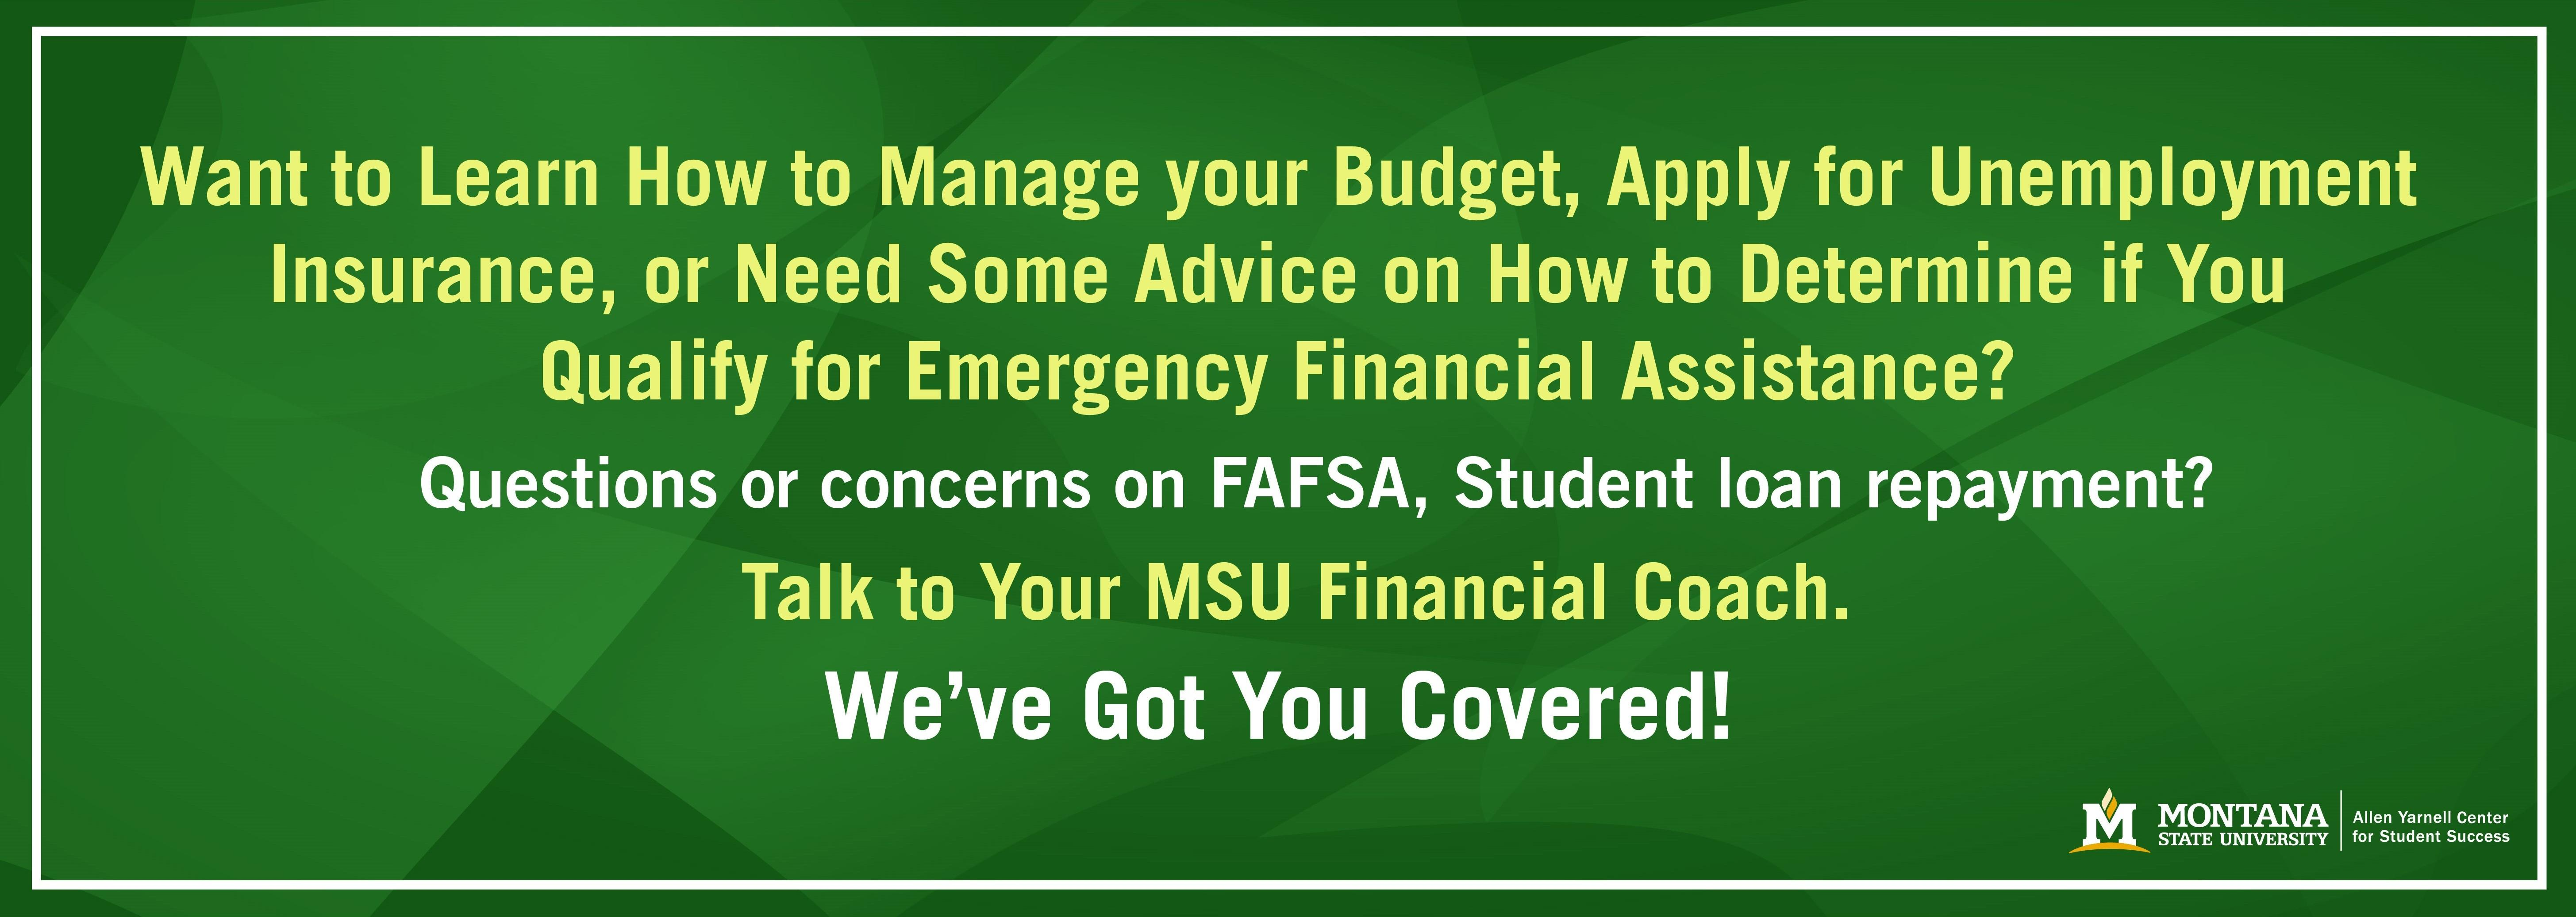 Want to learn how to manage your budget, apply for unemployment insurance, or need some advice on how to determine if you qualify for emergency financial assistance? We've got you covered! Talk to your MSU financial coach.